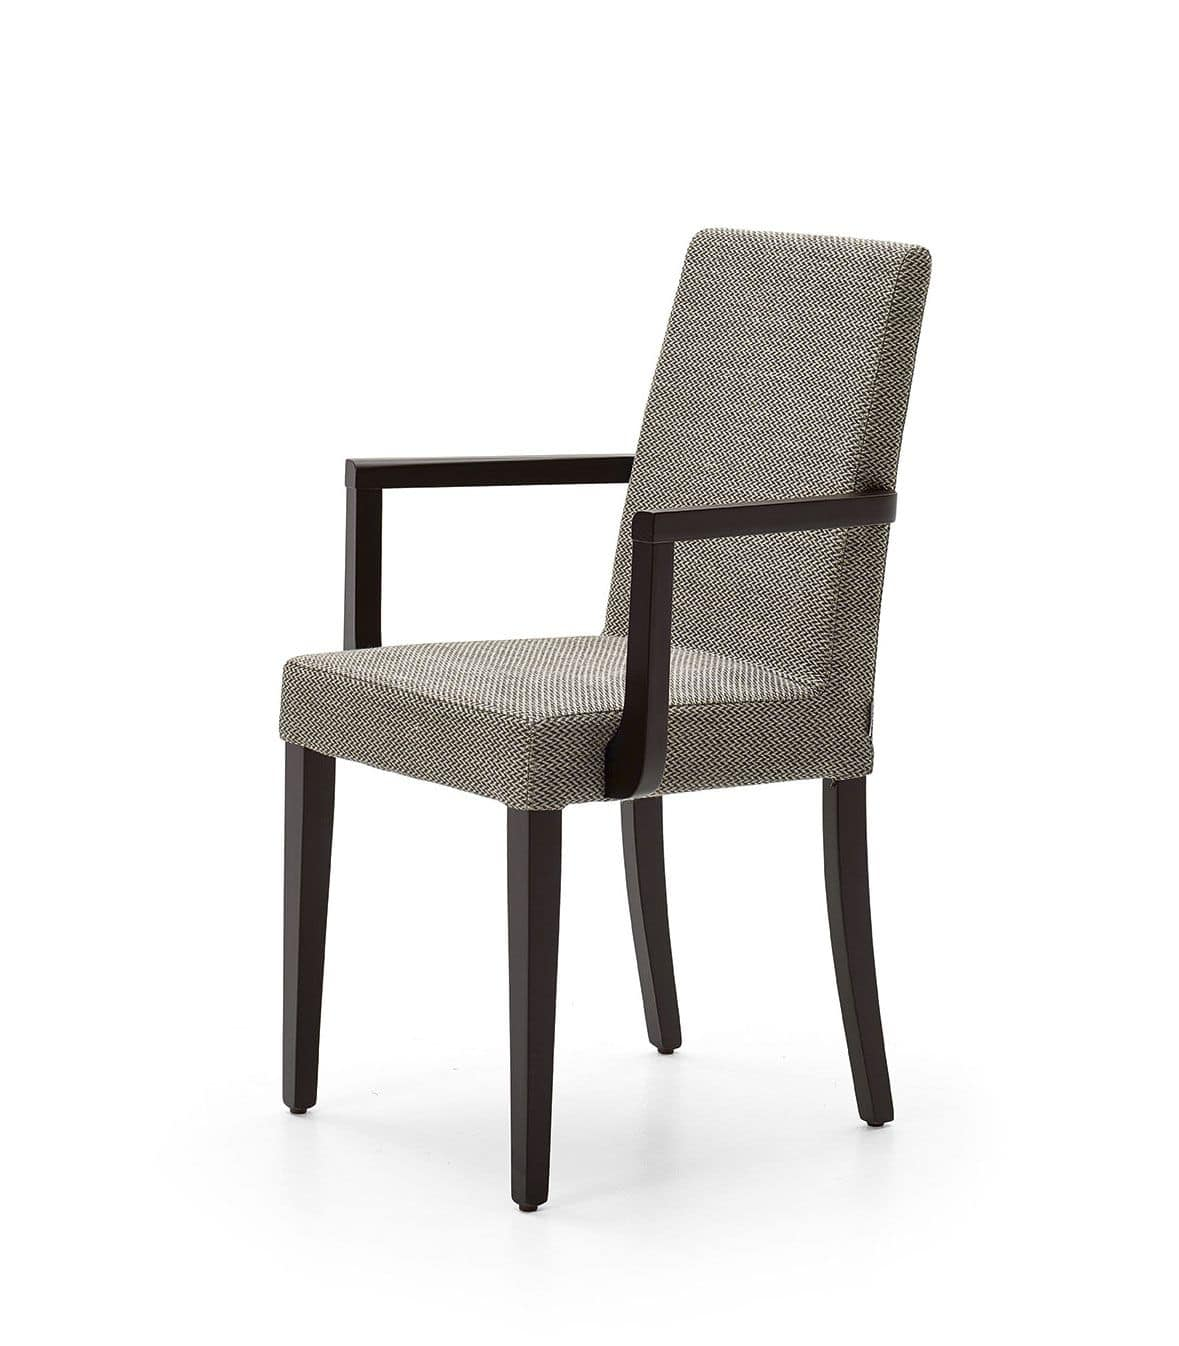 Upholstered Chairs For Dining Room Upholstered Chair With Armrests For Dining Room Idfdesign